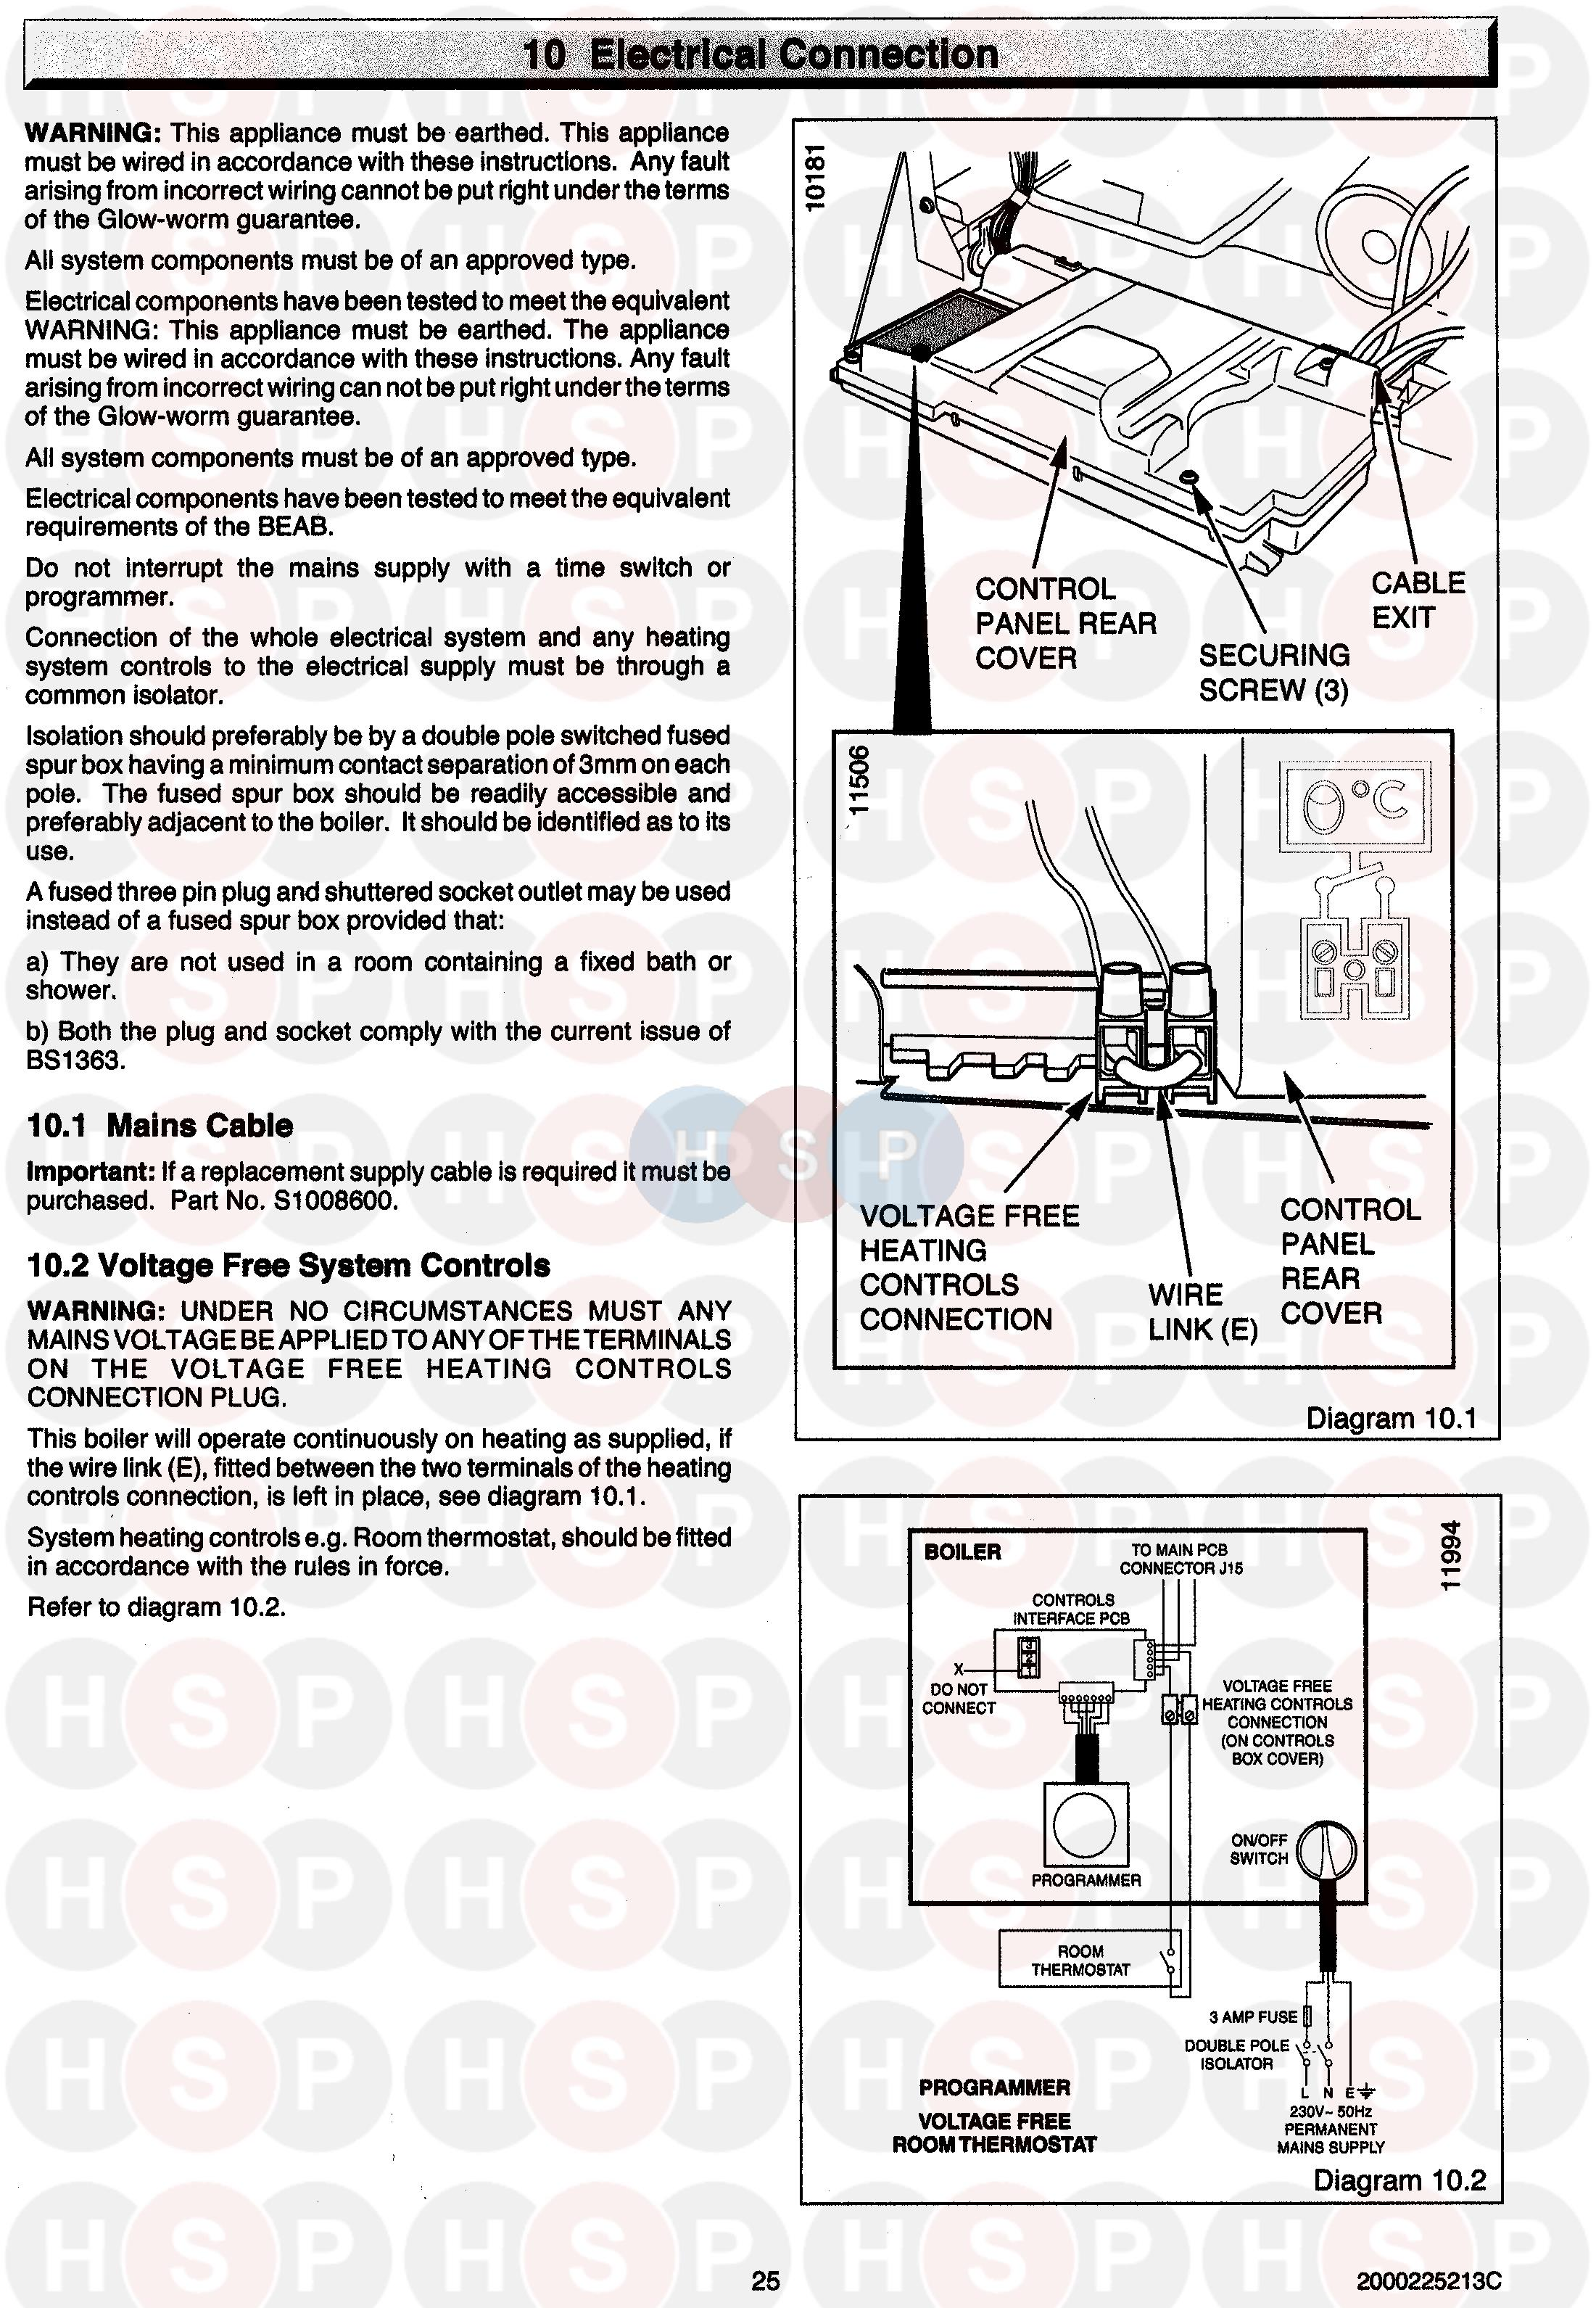 Old Fashioned Glow Worm Ultracom 38cxi User Manual Pattern ...